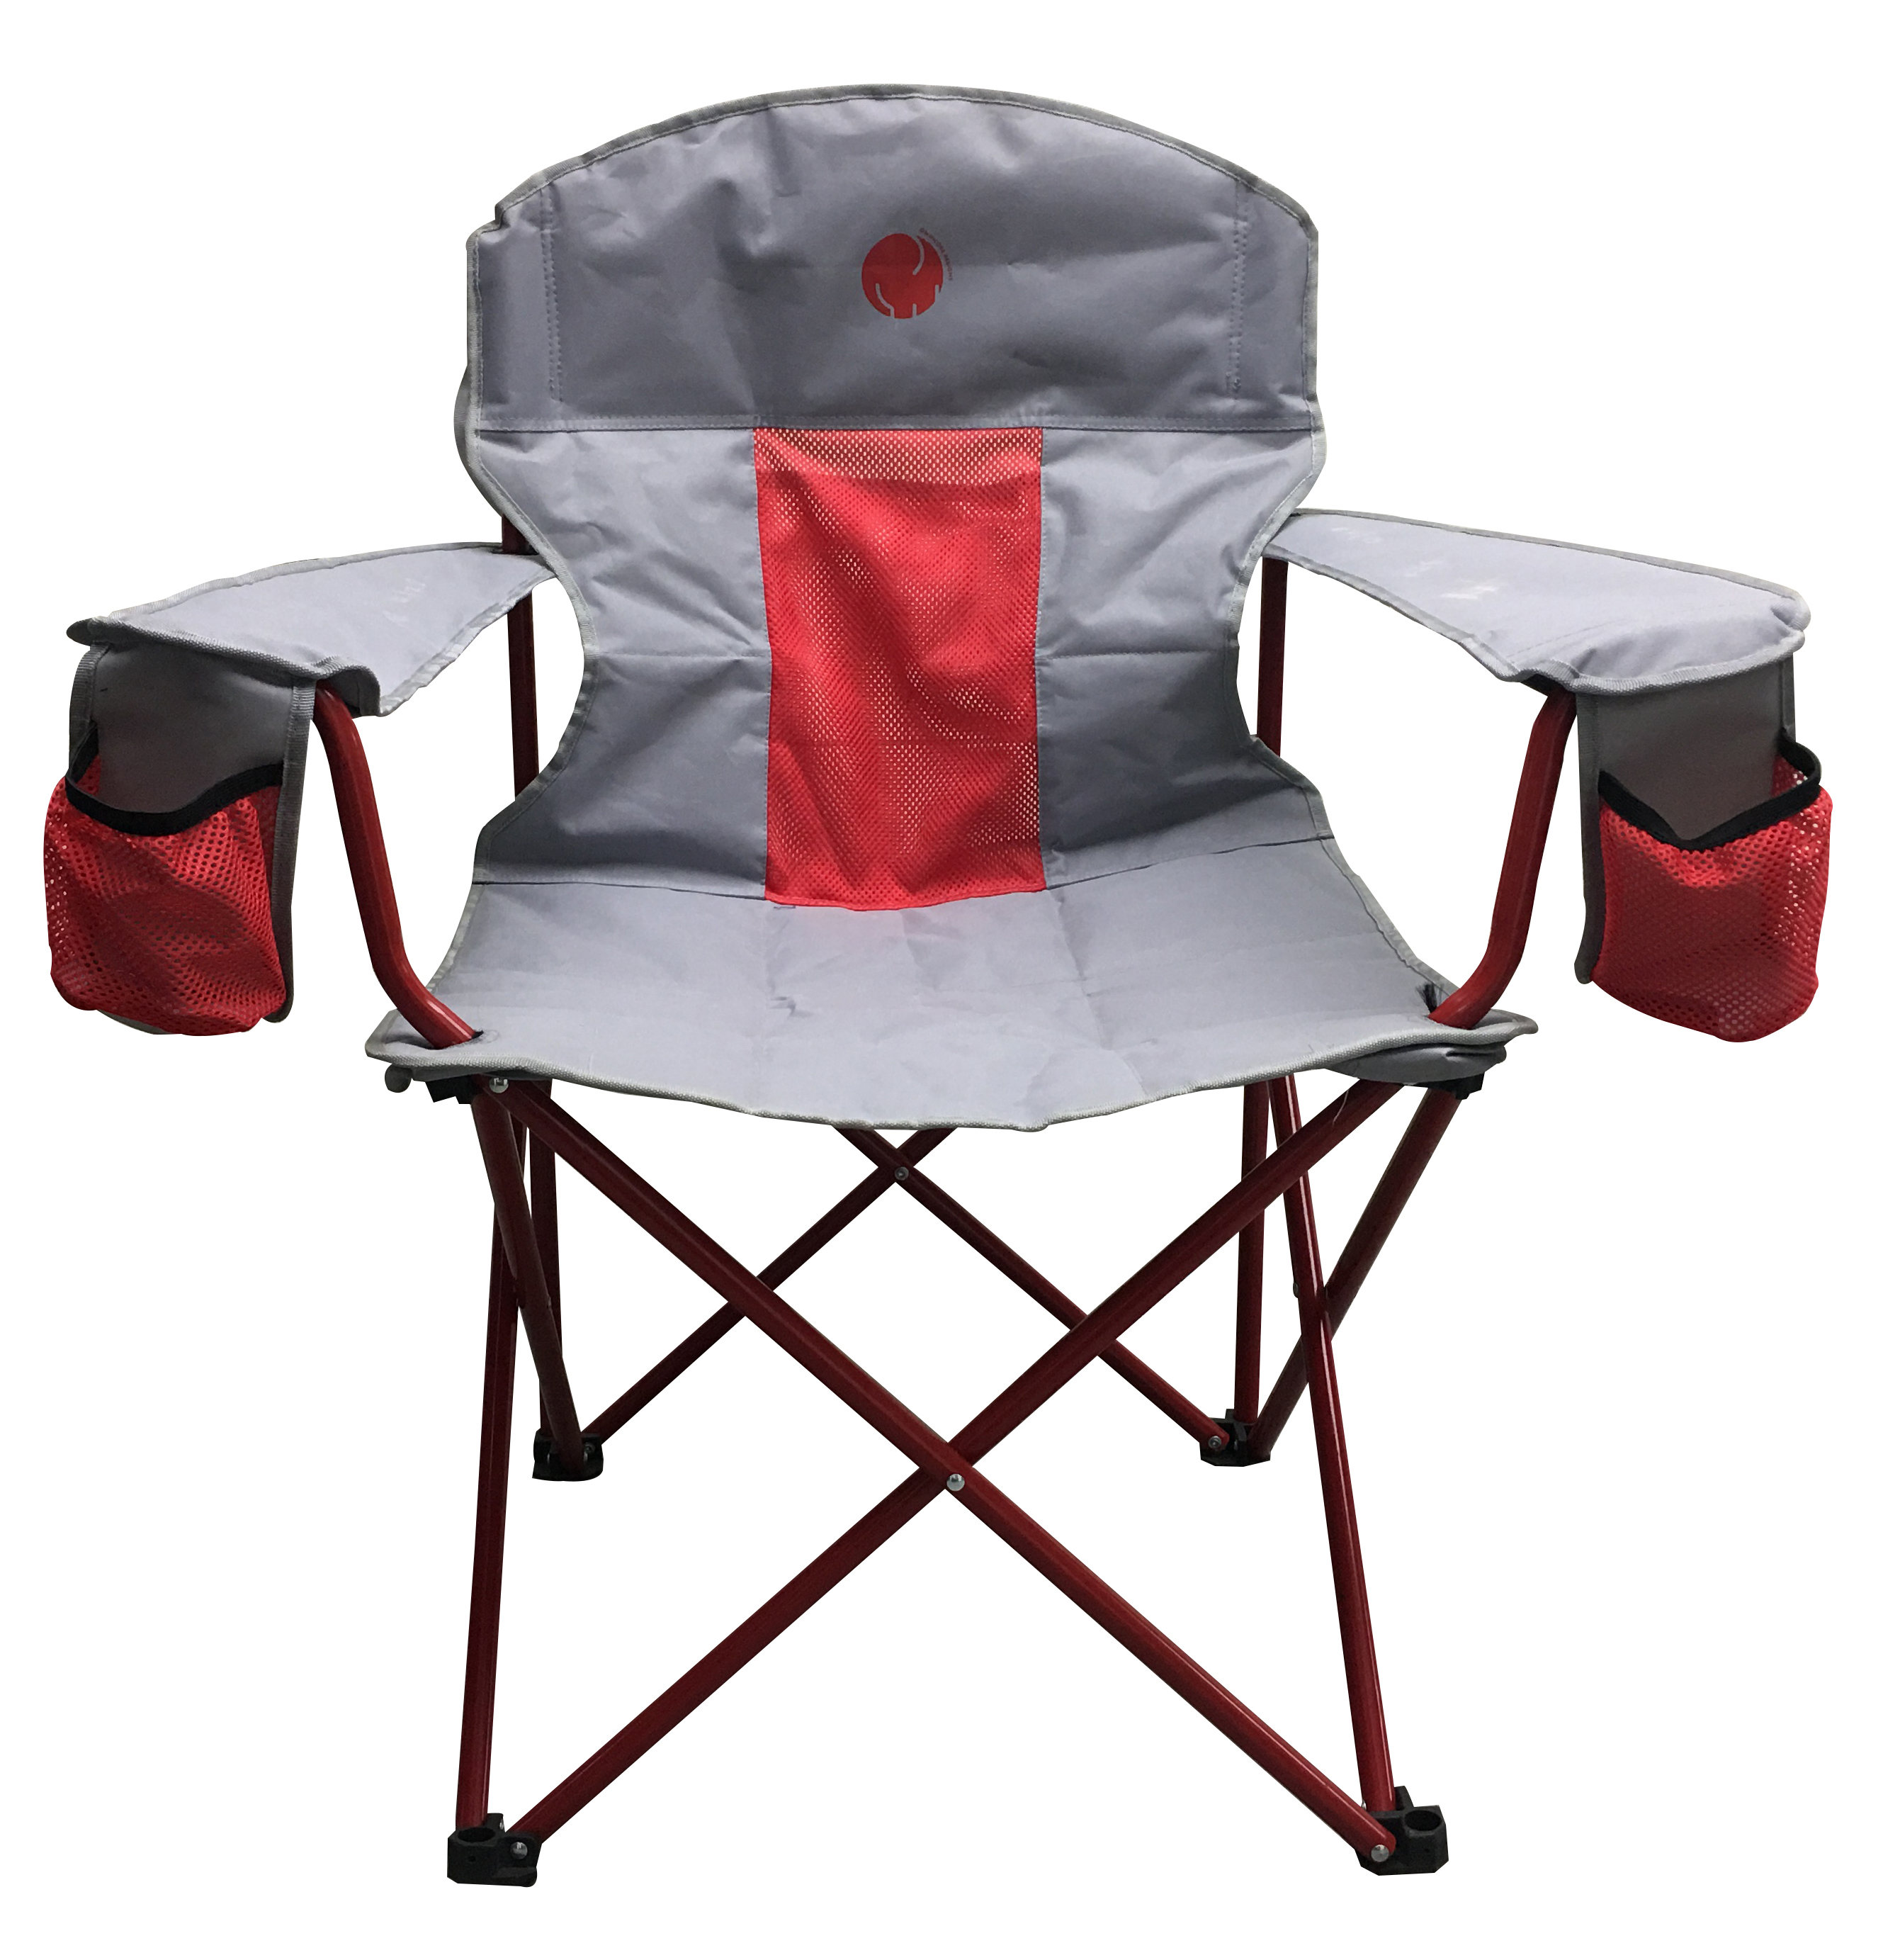 OmniCore Designs New Standard: Oversized Heavy Duty Padded Mesh Quad Folding Camp Chair (300 lb. Capacity)